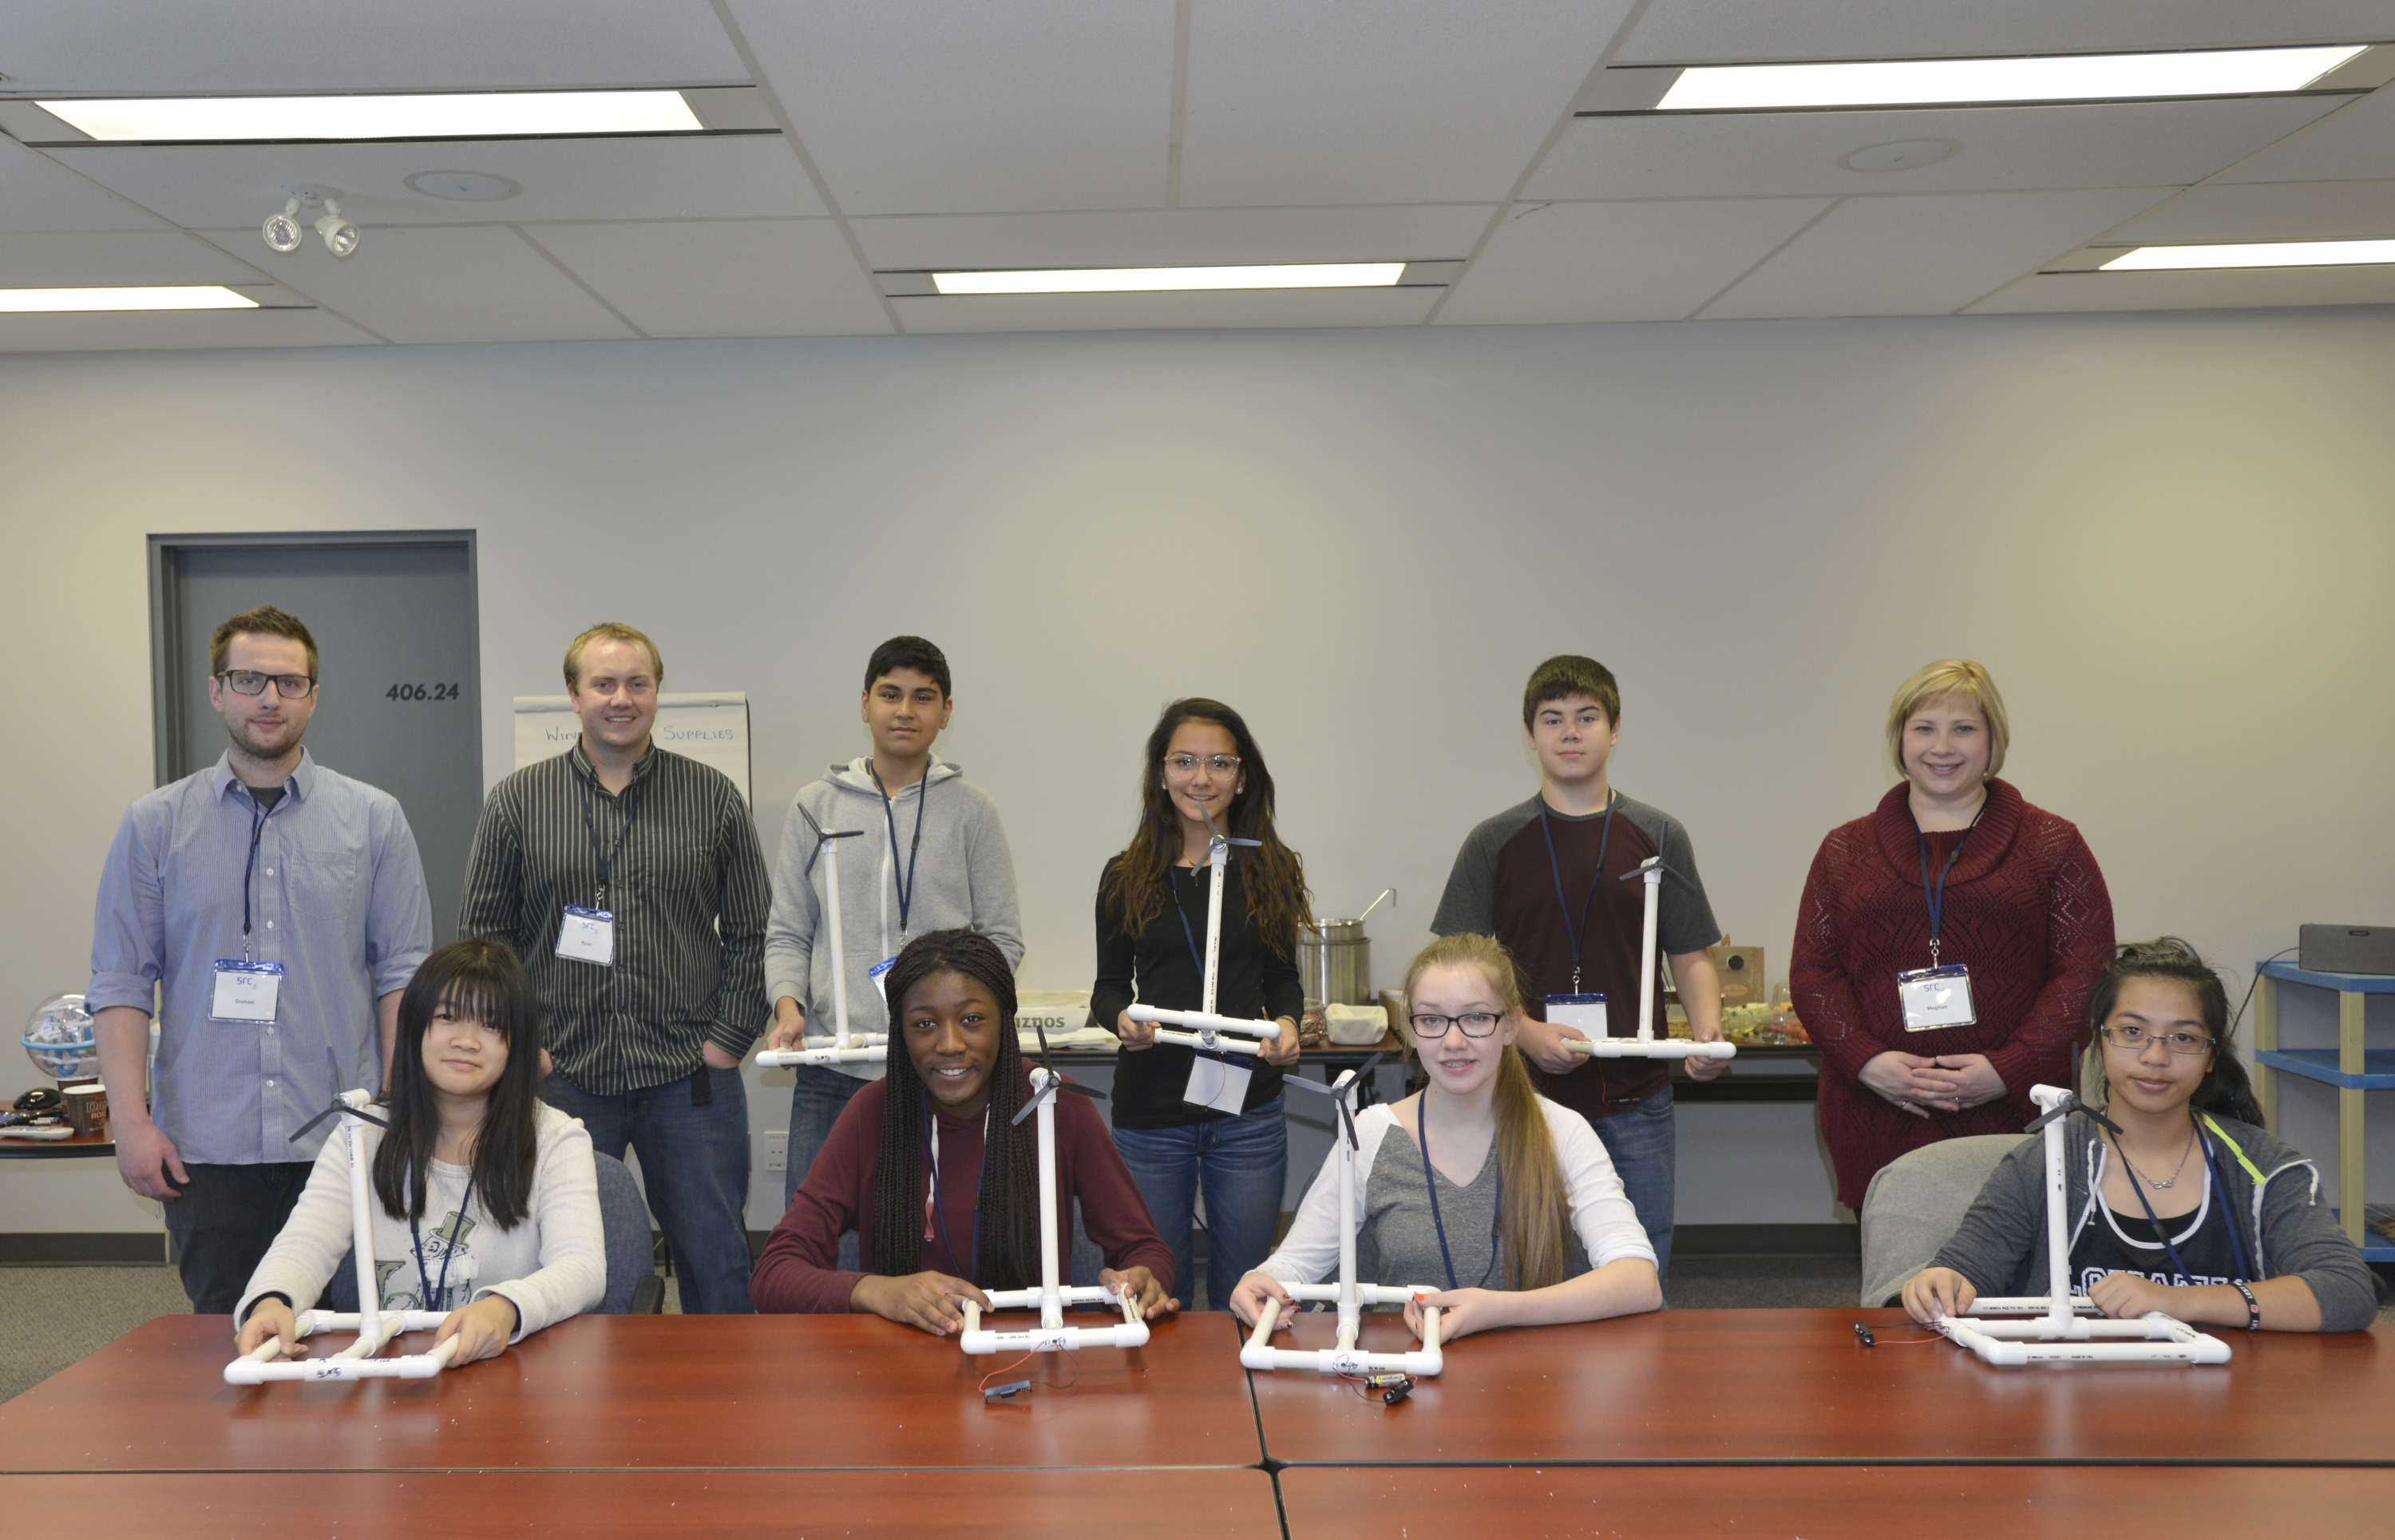 7 grade 9 students stand with their completed wind turbine models